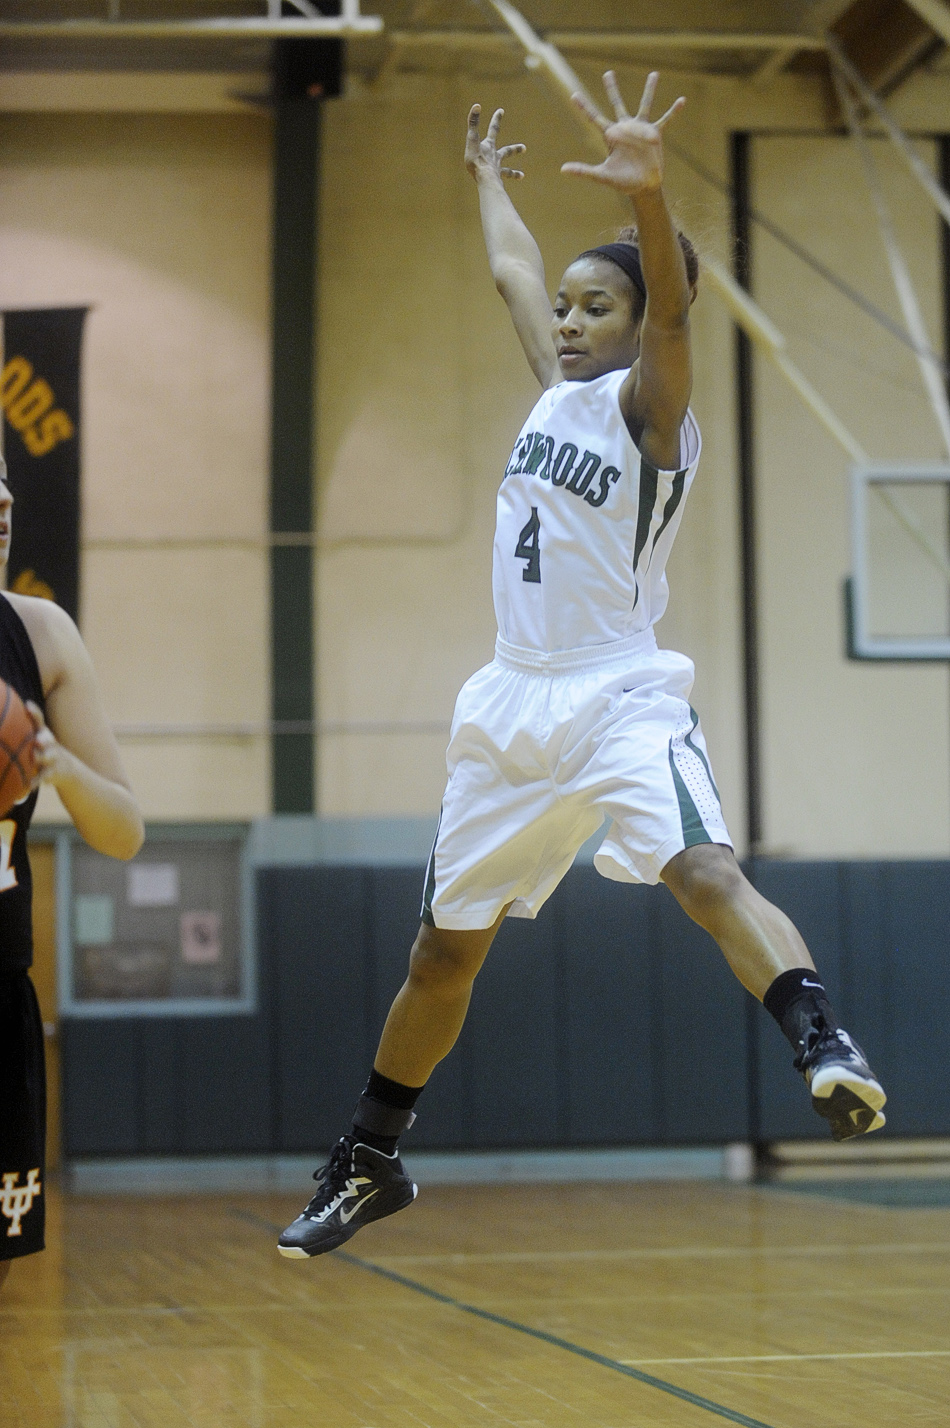 NICK SCHNELLE/JOURNAL STAR  LaDaisha Yates (4) of Richwoods  jumps in the air to block a pass during the game against United Township on Friday at a Class 4A Regional Championship game at Richwoods High School. Richwoods defeated United Township 57-42.